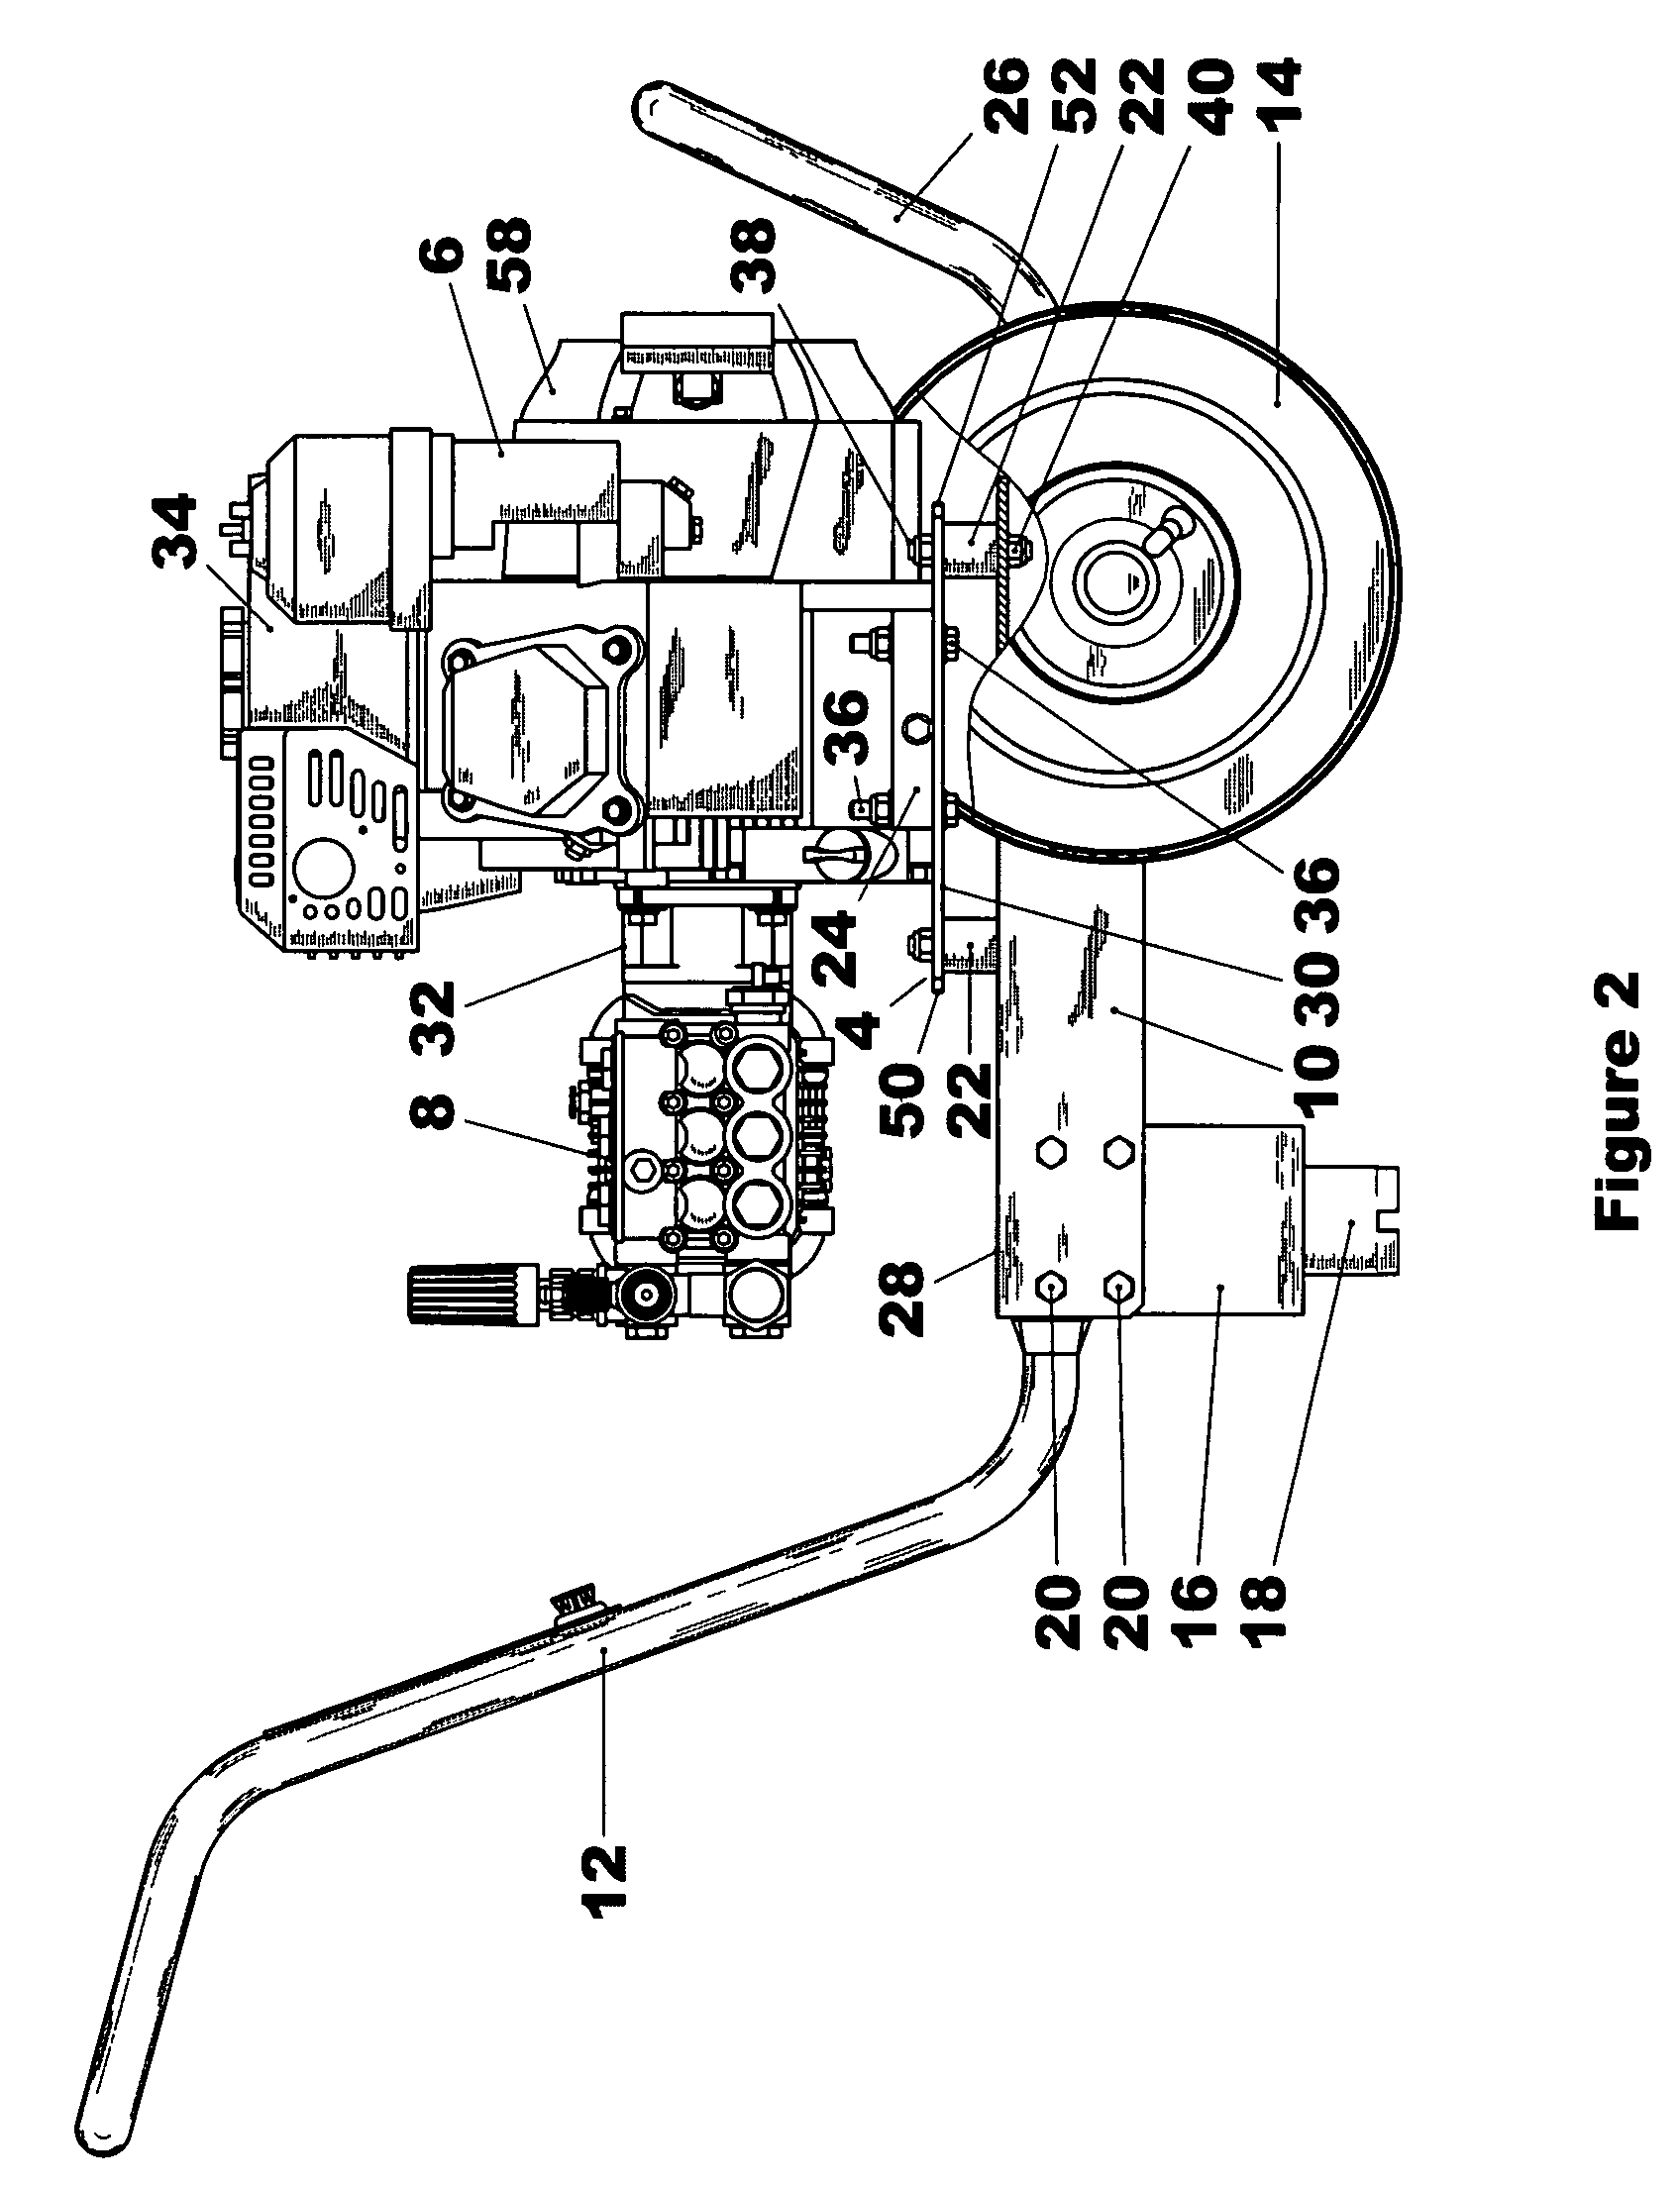 patent us7316286 pressure washer with vibration d ener Cable Wiring Diagram patent drawing